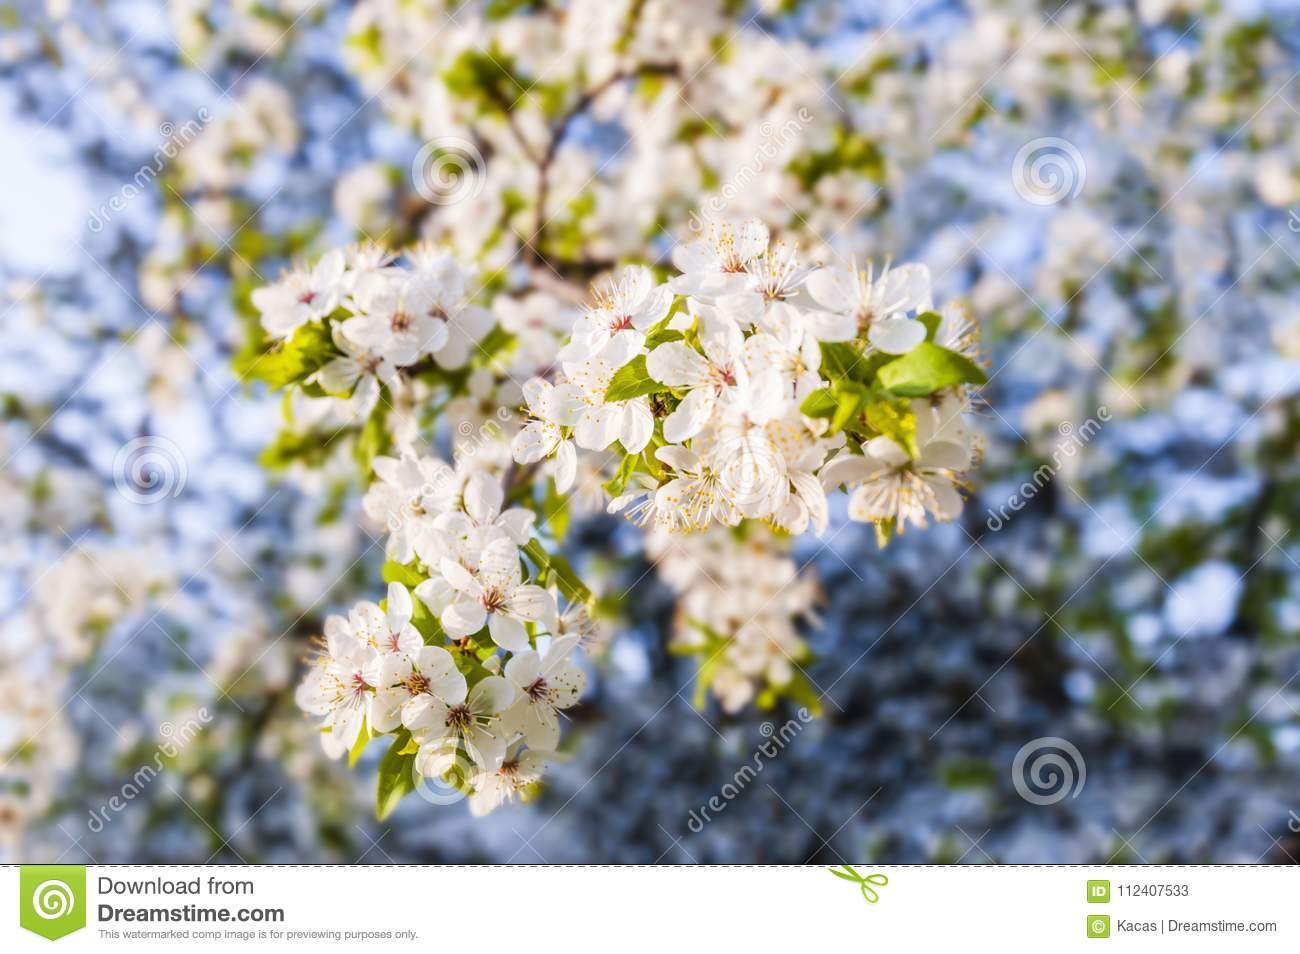 Hanging down blooming apple tree branch full of white flowers stock download hanging down blooming apple tree branch full of white flowers stock image image of mightylinksfo